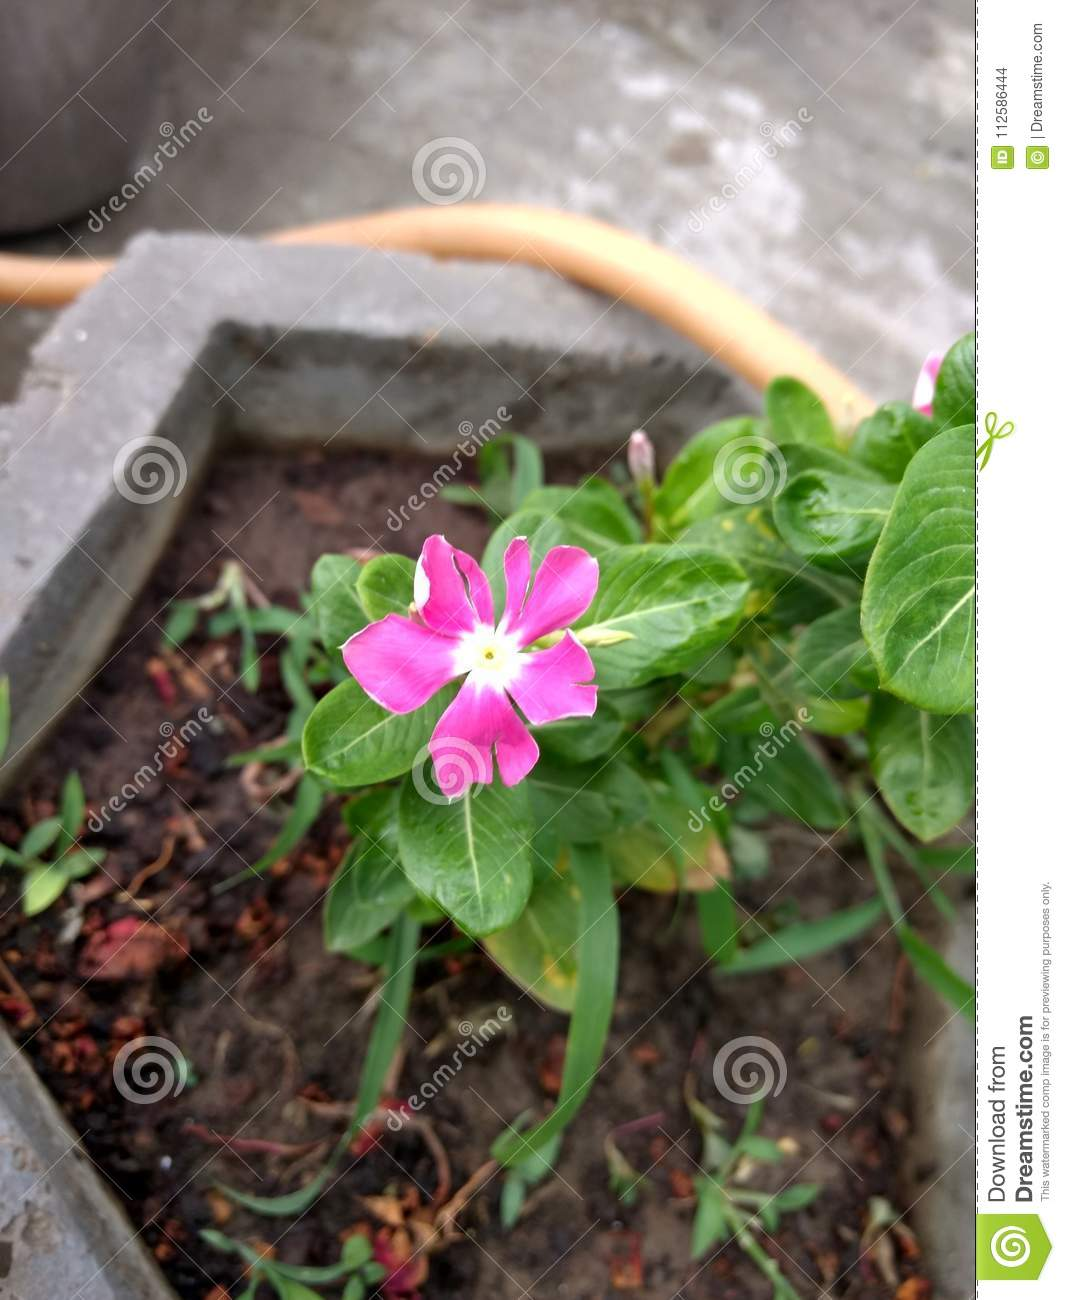 Cute Small Pink Flower In Pot Stock Photo Image Of Dark Cute